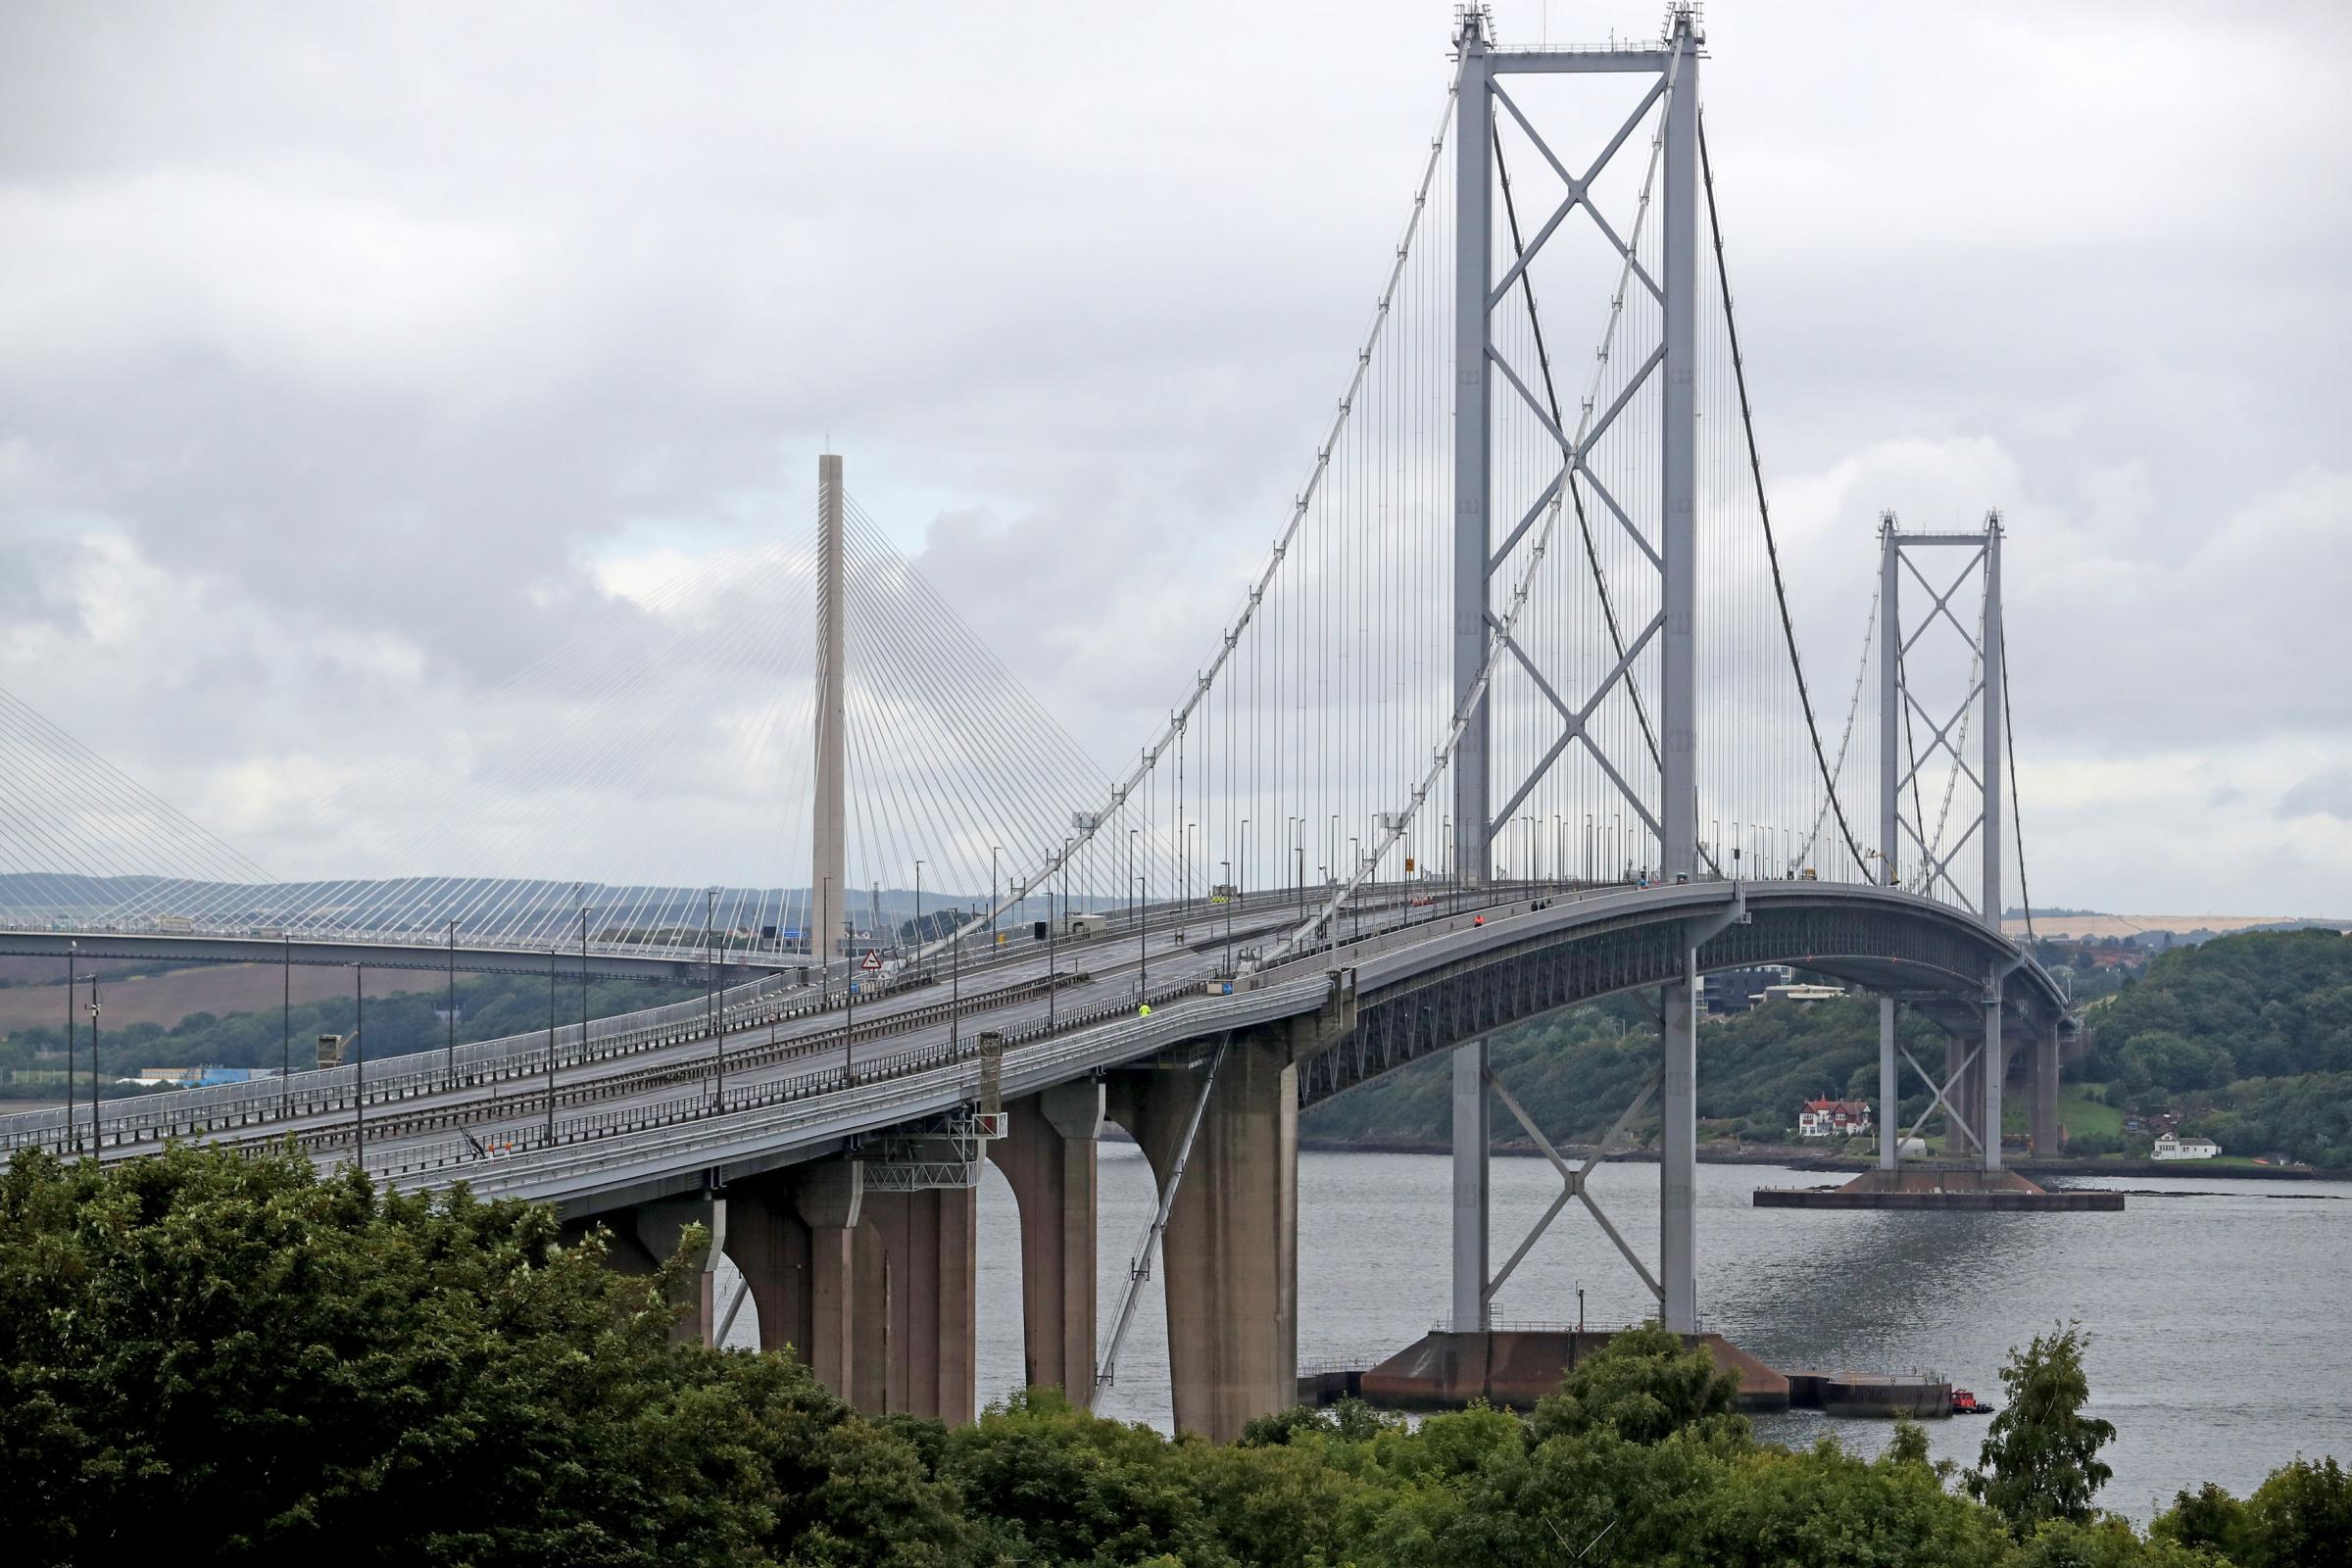 The Forth Road Bridge has reopened to public transport.